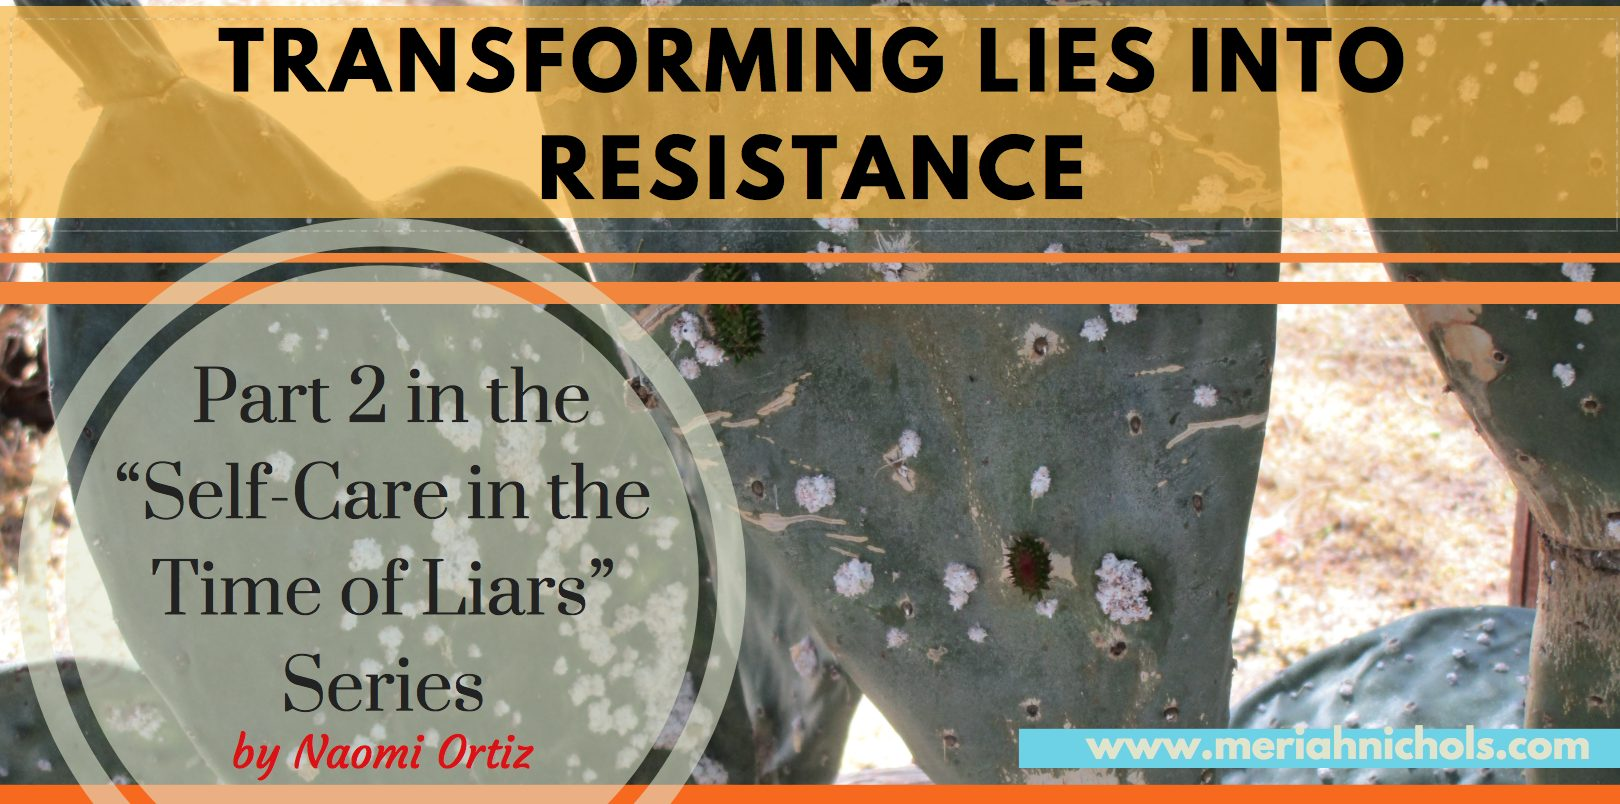 """Transforming Lies Into Resistance: Part 2 in the """"Self-Care in the Time of Liars"""" Series, by Naomi Ortiz"""